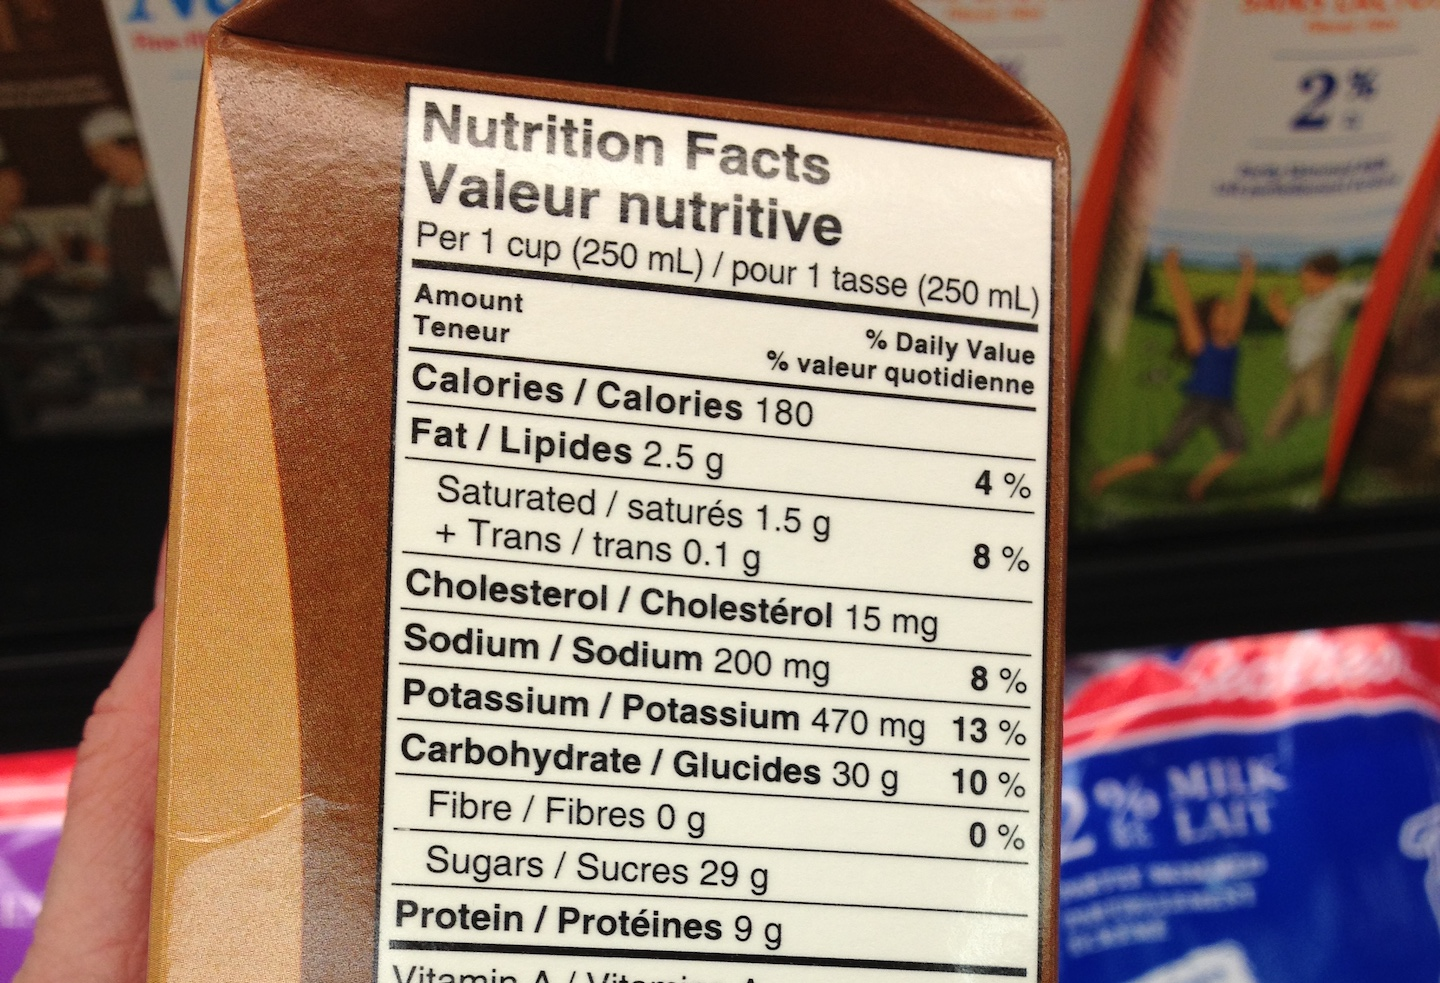 All commercially available packaged food in Australia must have nutritional information.